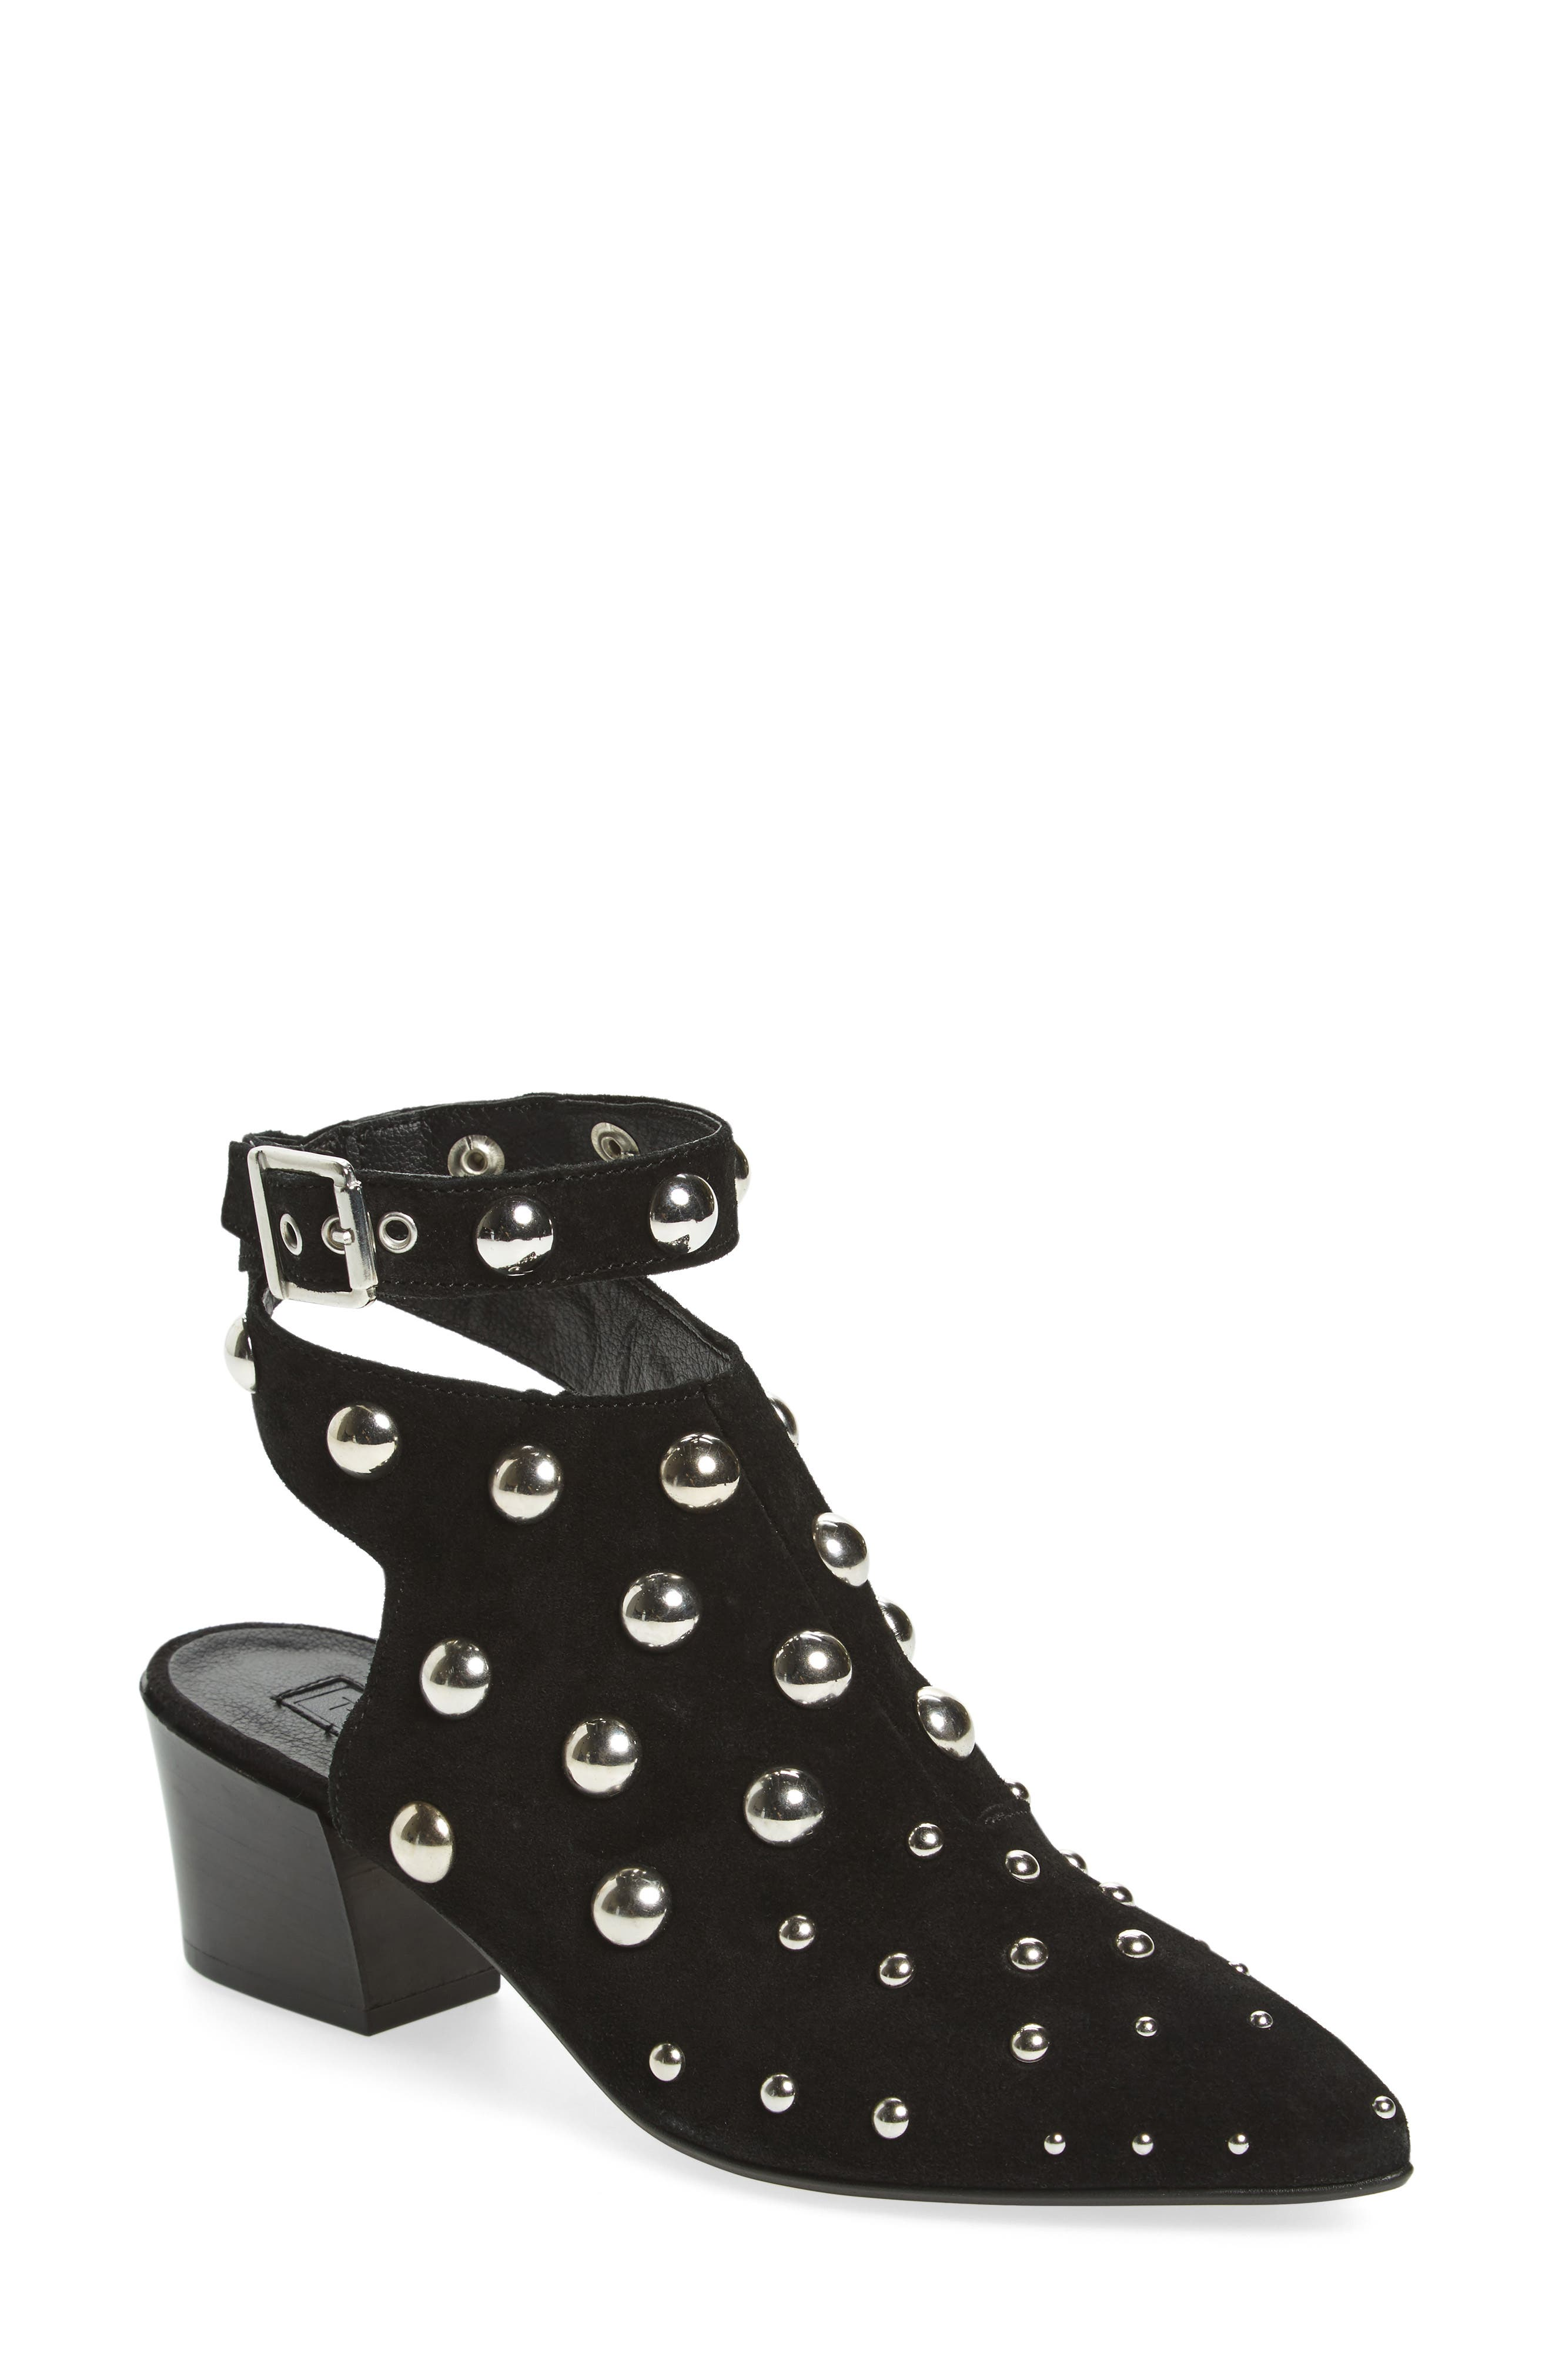 Alternate Image 1 Selected - Topshop Madness Studded Wraparound Bootie (Women)